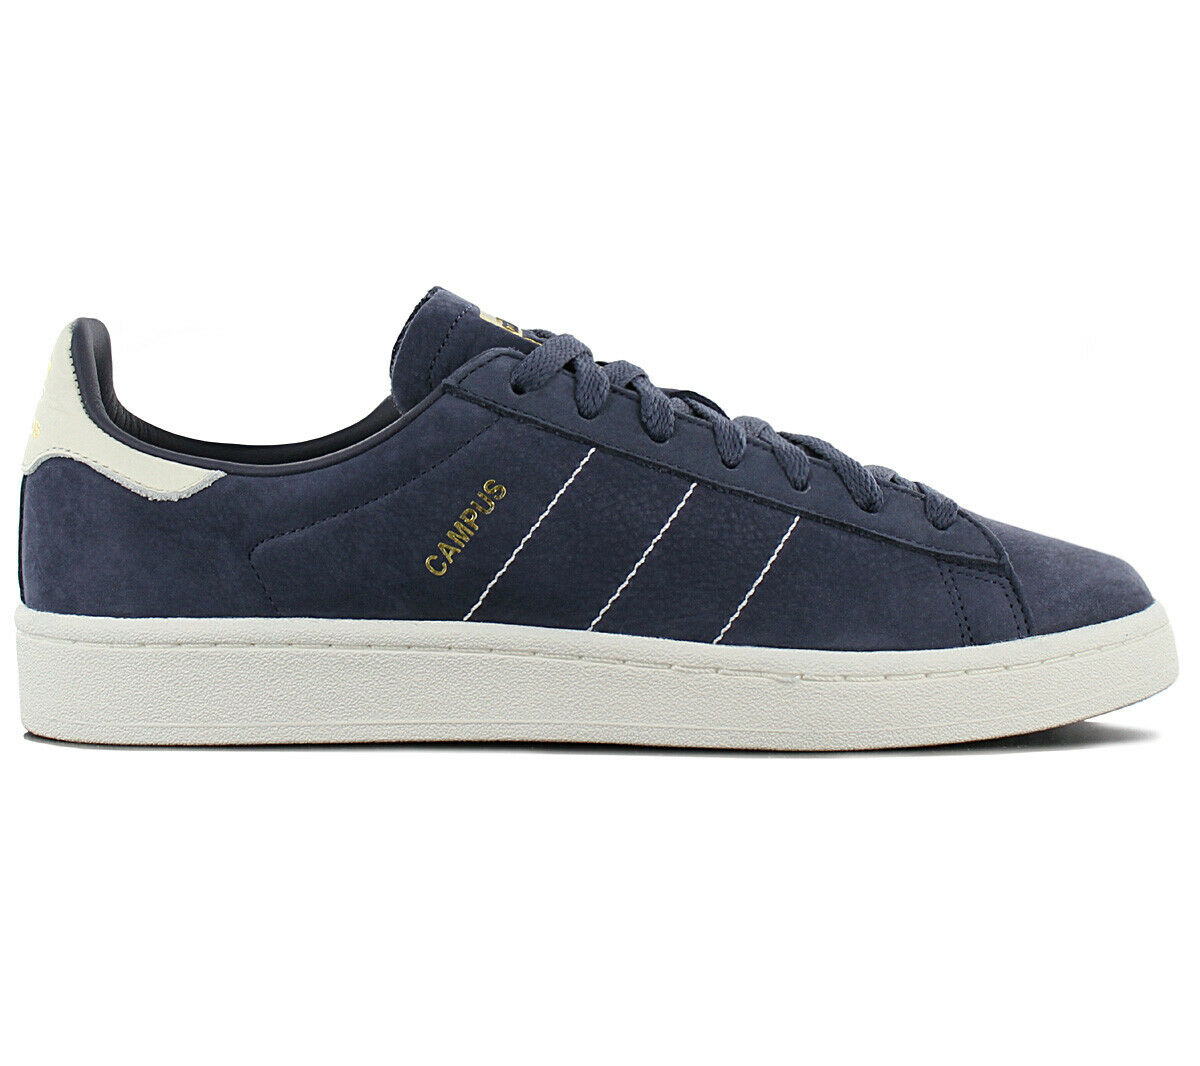 Adidas Originals Campus Sneaker shoes men Cq2047 pelle blue da Ginnastica Nuove